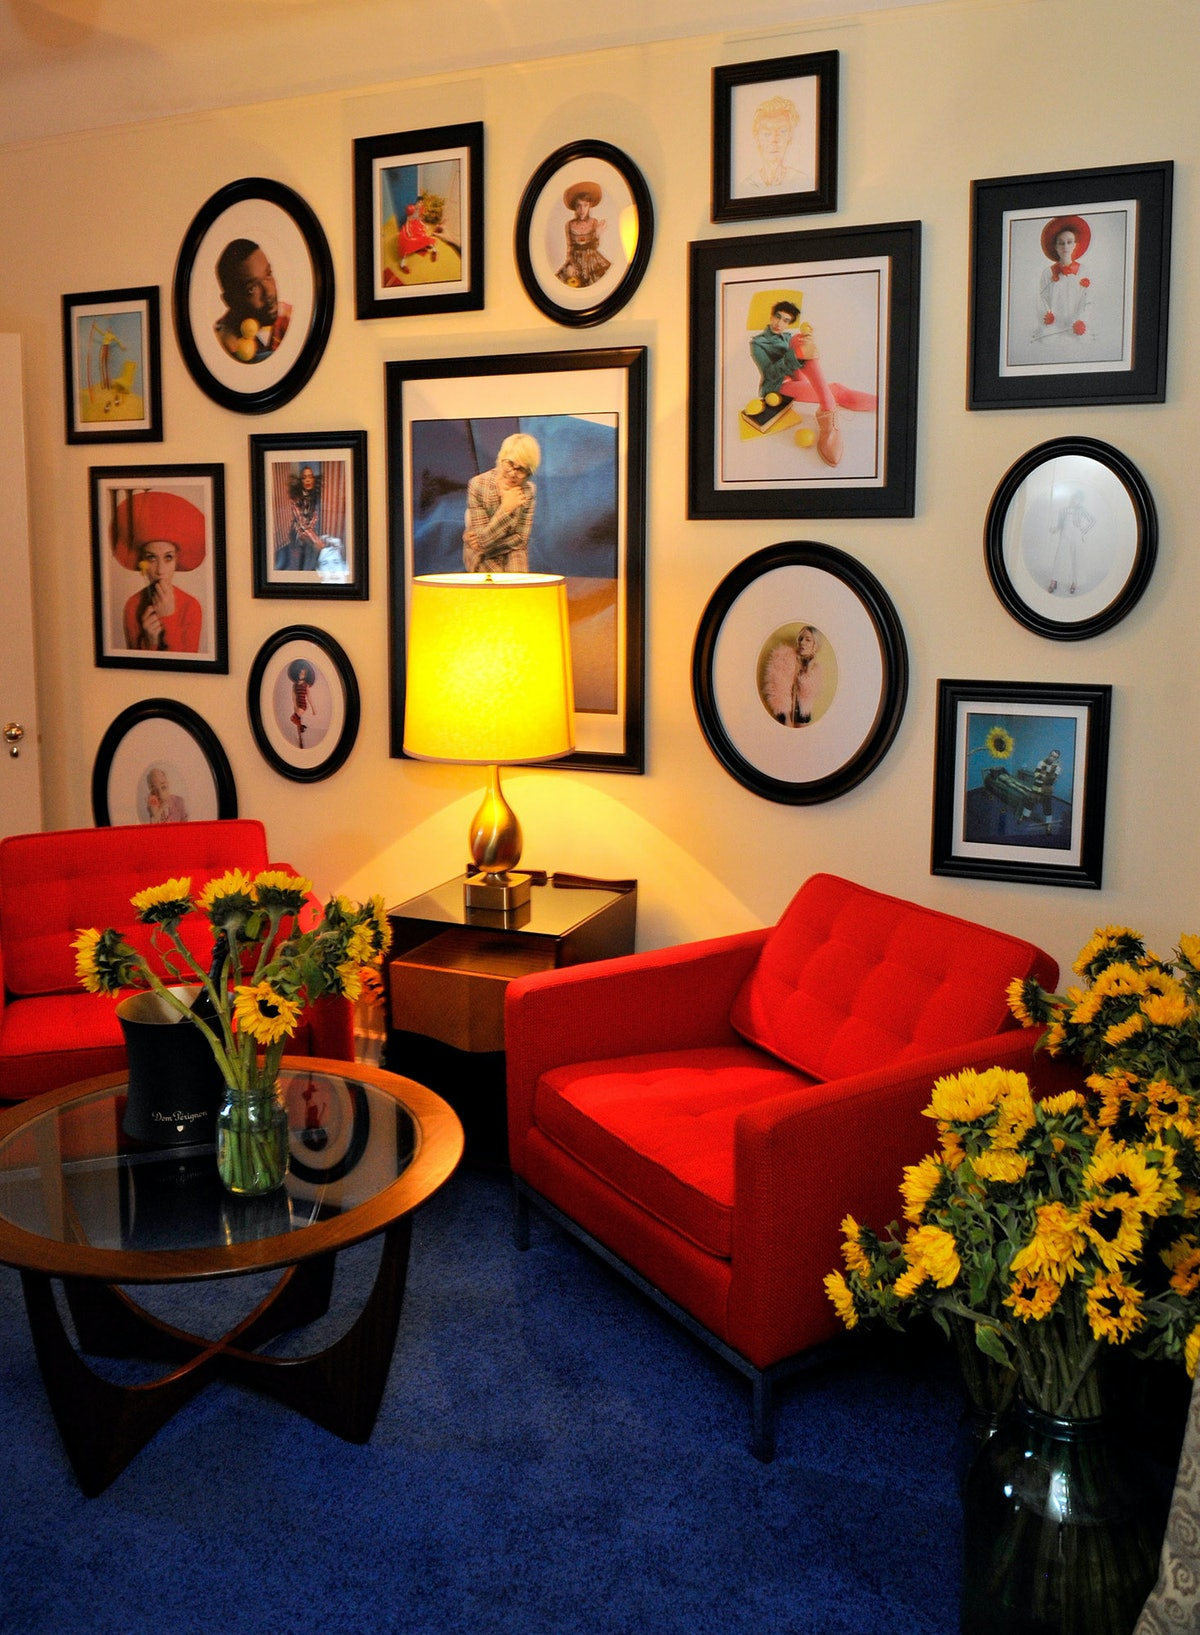 """Photos from the """"Best Performances"""" portfolio on display at the Chateau Marmont"""